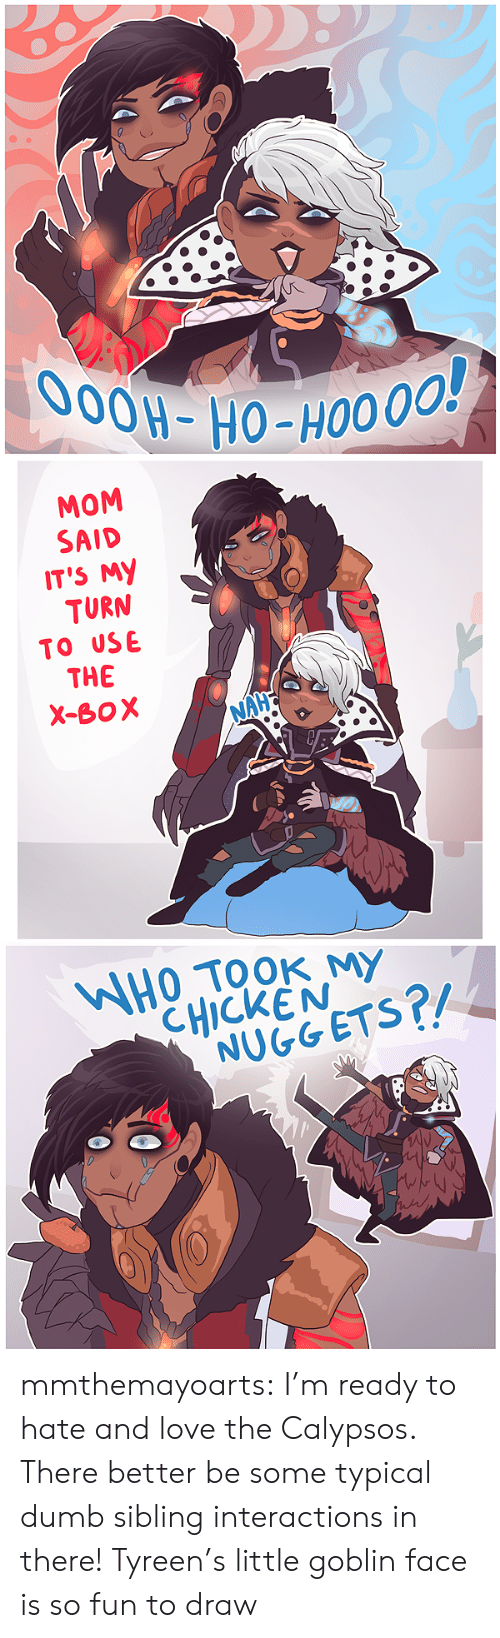 typical: O0OH-HO-HO0 00!   MOM  SAID  IT'S MY  TURN  TO USE  THE  X-BOX  NAHE   WHOTOOK MY  CHICKEN  NUGGETS?/ mmthemayoarts:  I'm ready to hate and love the Calypsos. There better be some typical dumb sibling interactions in there!Tyreen's little goblin face is so fun to draw